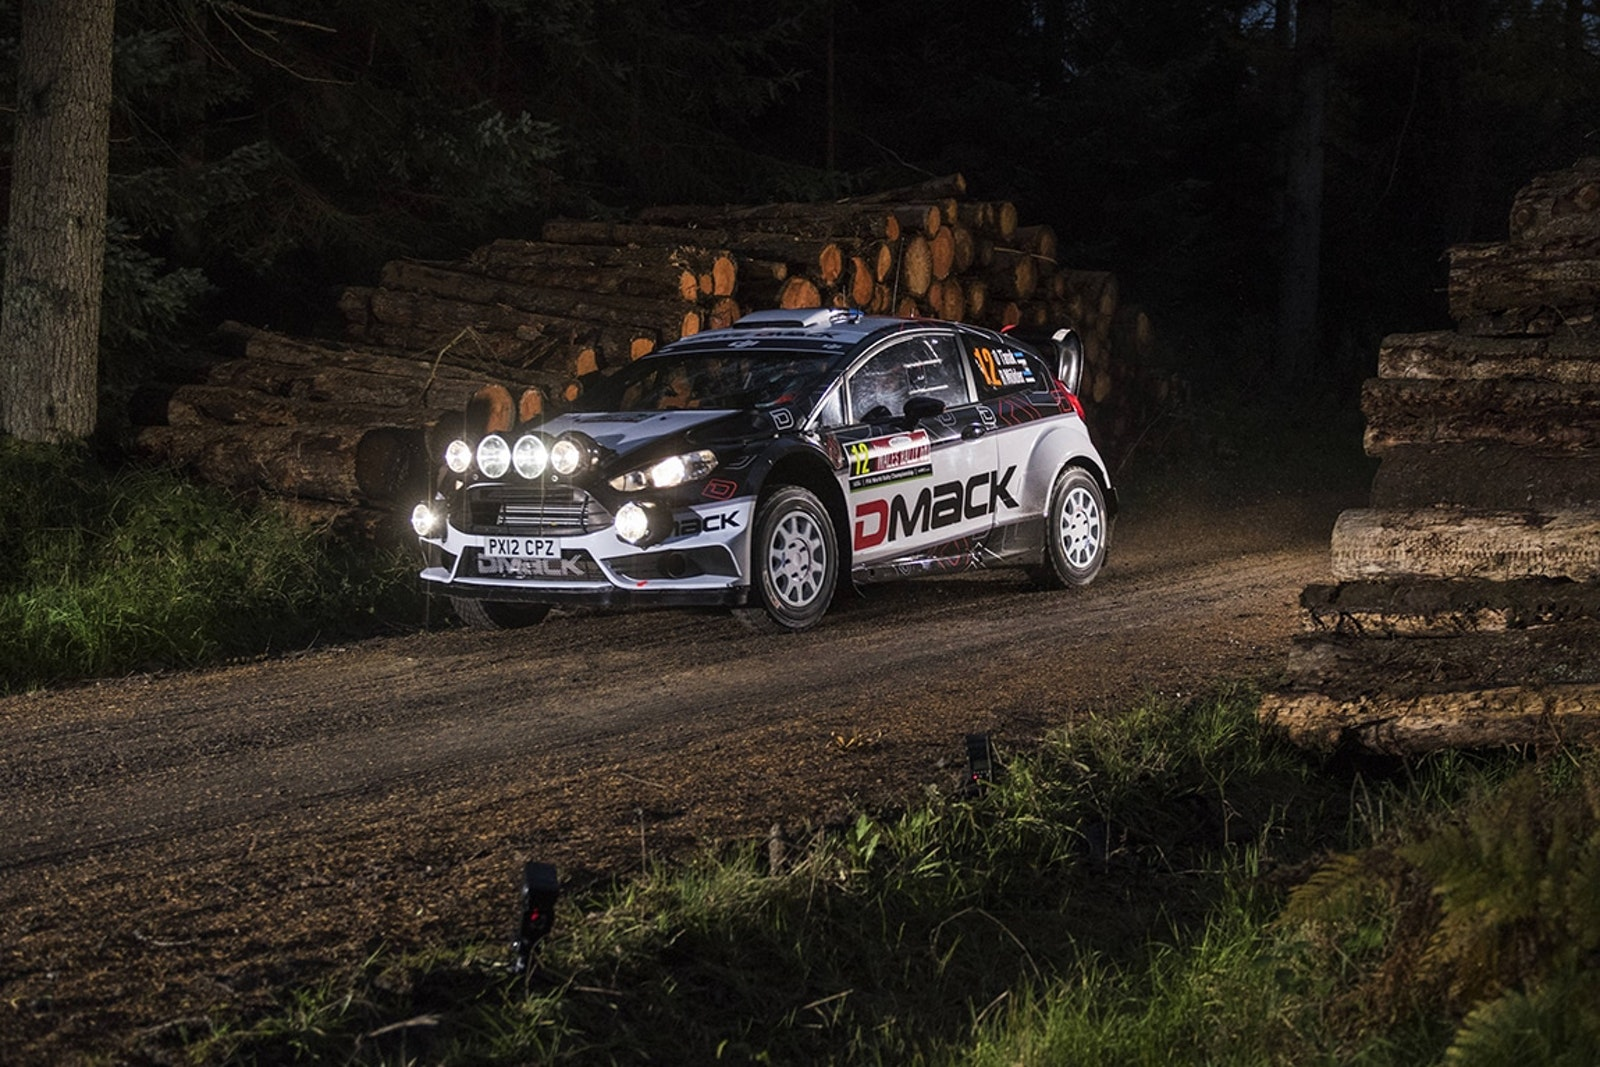 Ott Tanak performs during FIA World Rally Championship in Deeside, Great Britain on 27  November 2016 // Jaanus Ree/Red Bull Content Pool // P-20161027-00763 // Usage for editorial use only // Please go to www.redbullcontentpool.com for further information. //